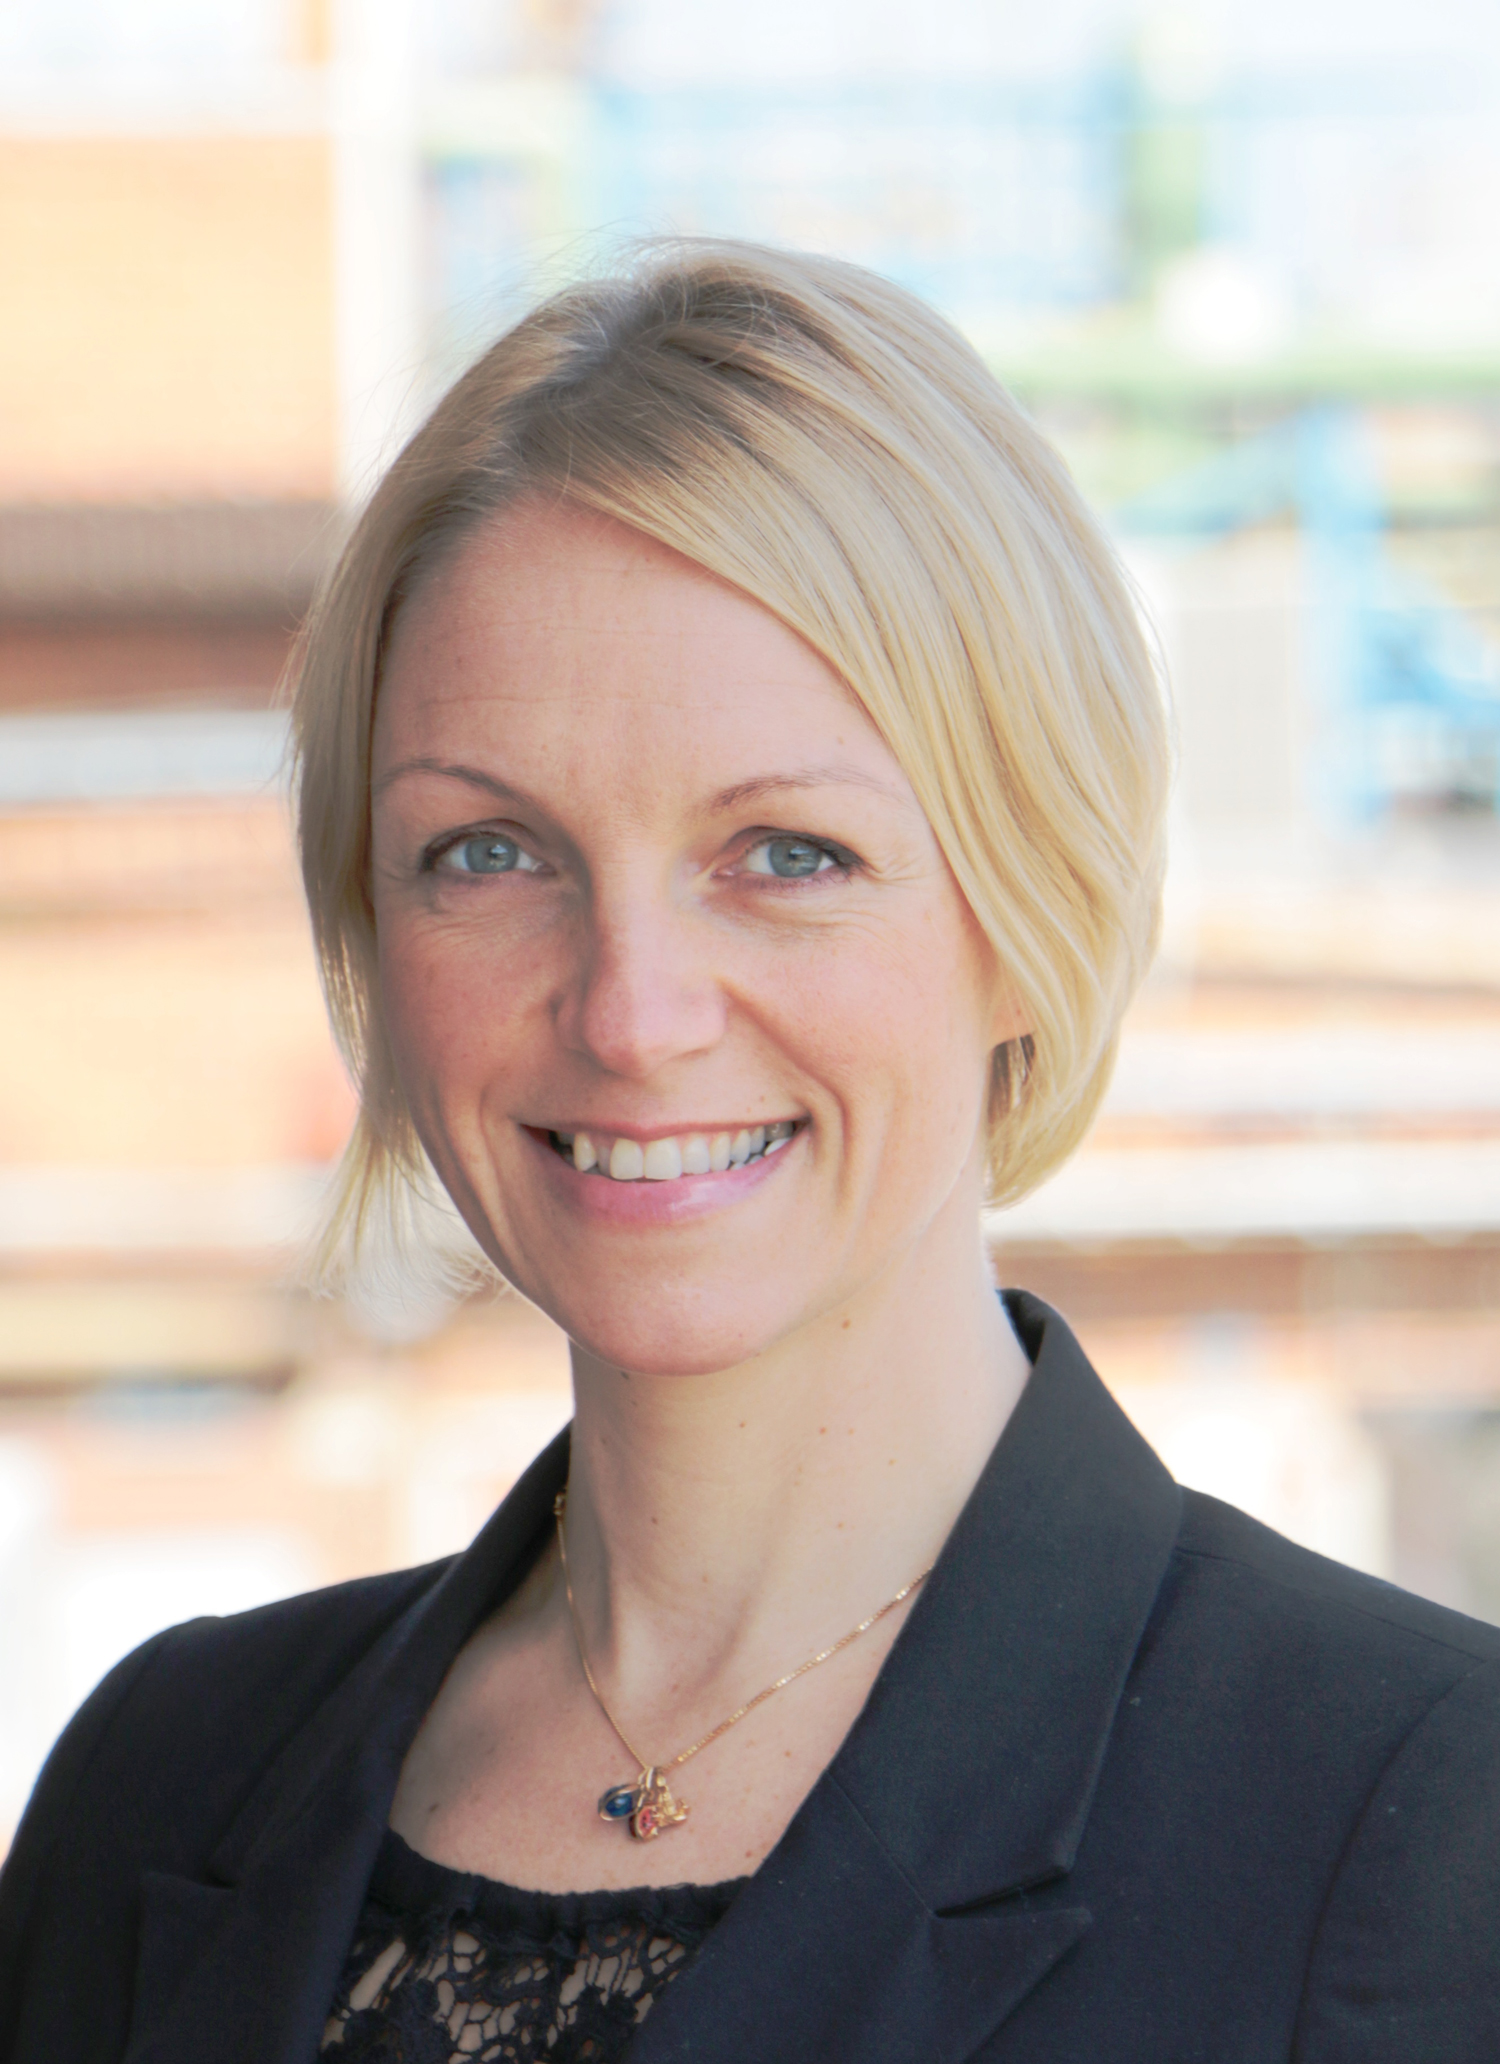 Anna Eriksson, technical manager, chemical industry, Nynas Naphthenics